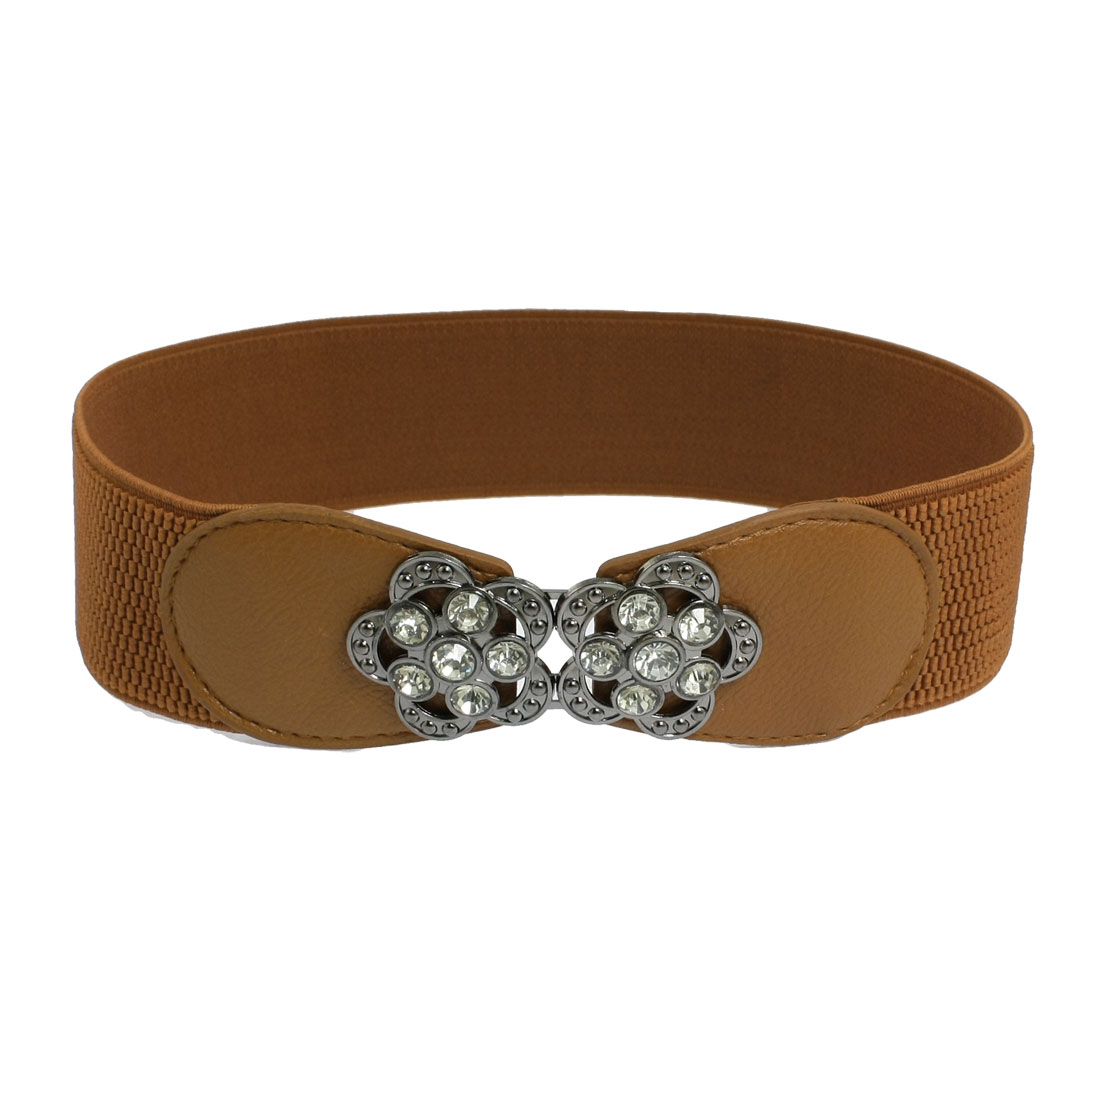 Lady Brown 5cm Width Elastic Band Rhinestone Metal Flower Cinch Waist Belt